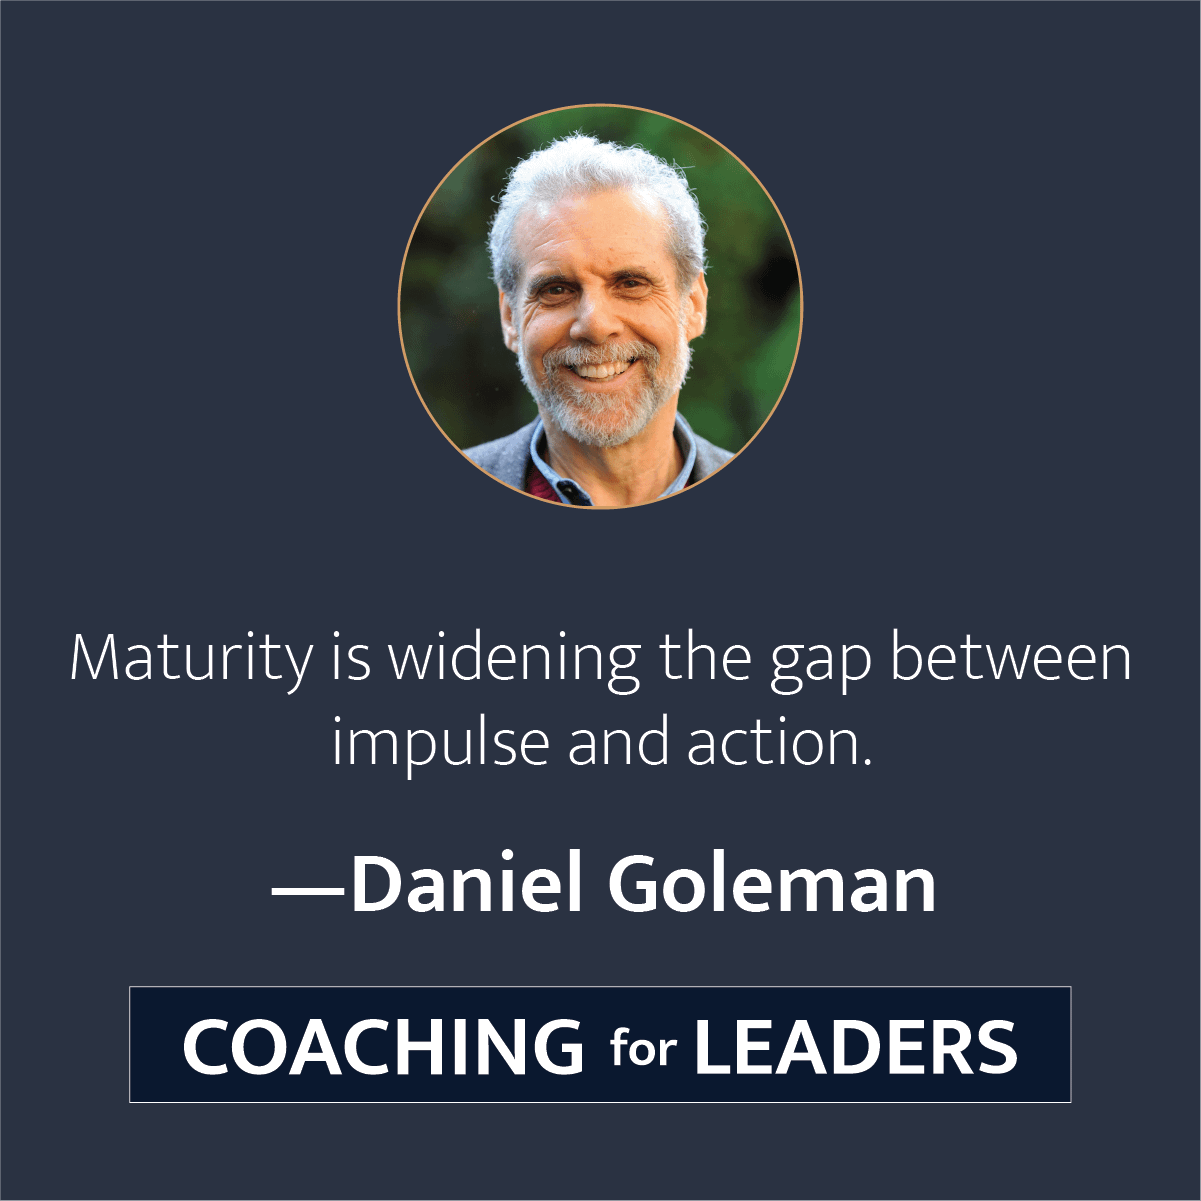 Maturity is widening the gap between impulse and action.